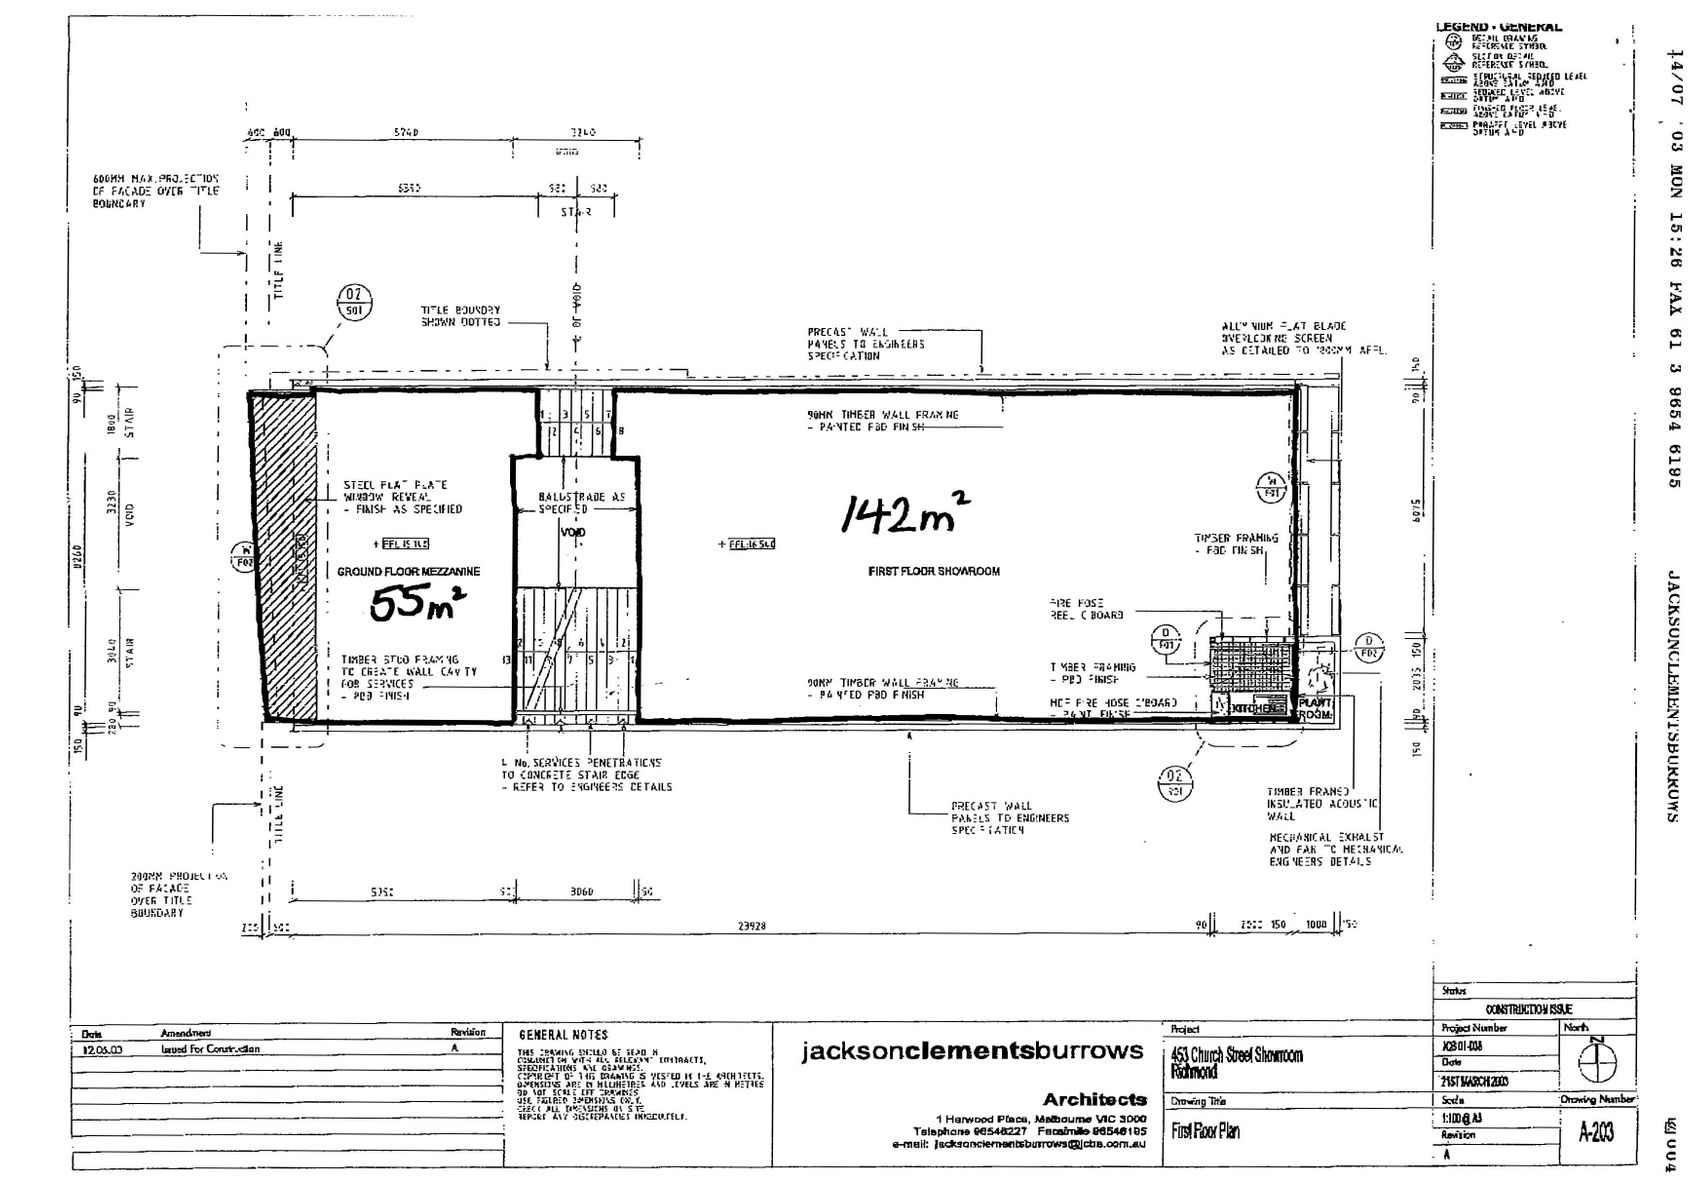 Building Plans Page 2 First Floor